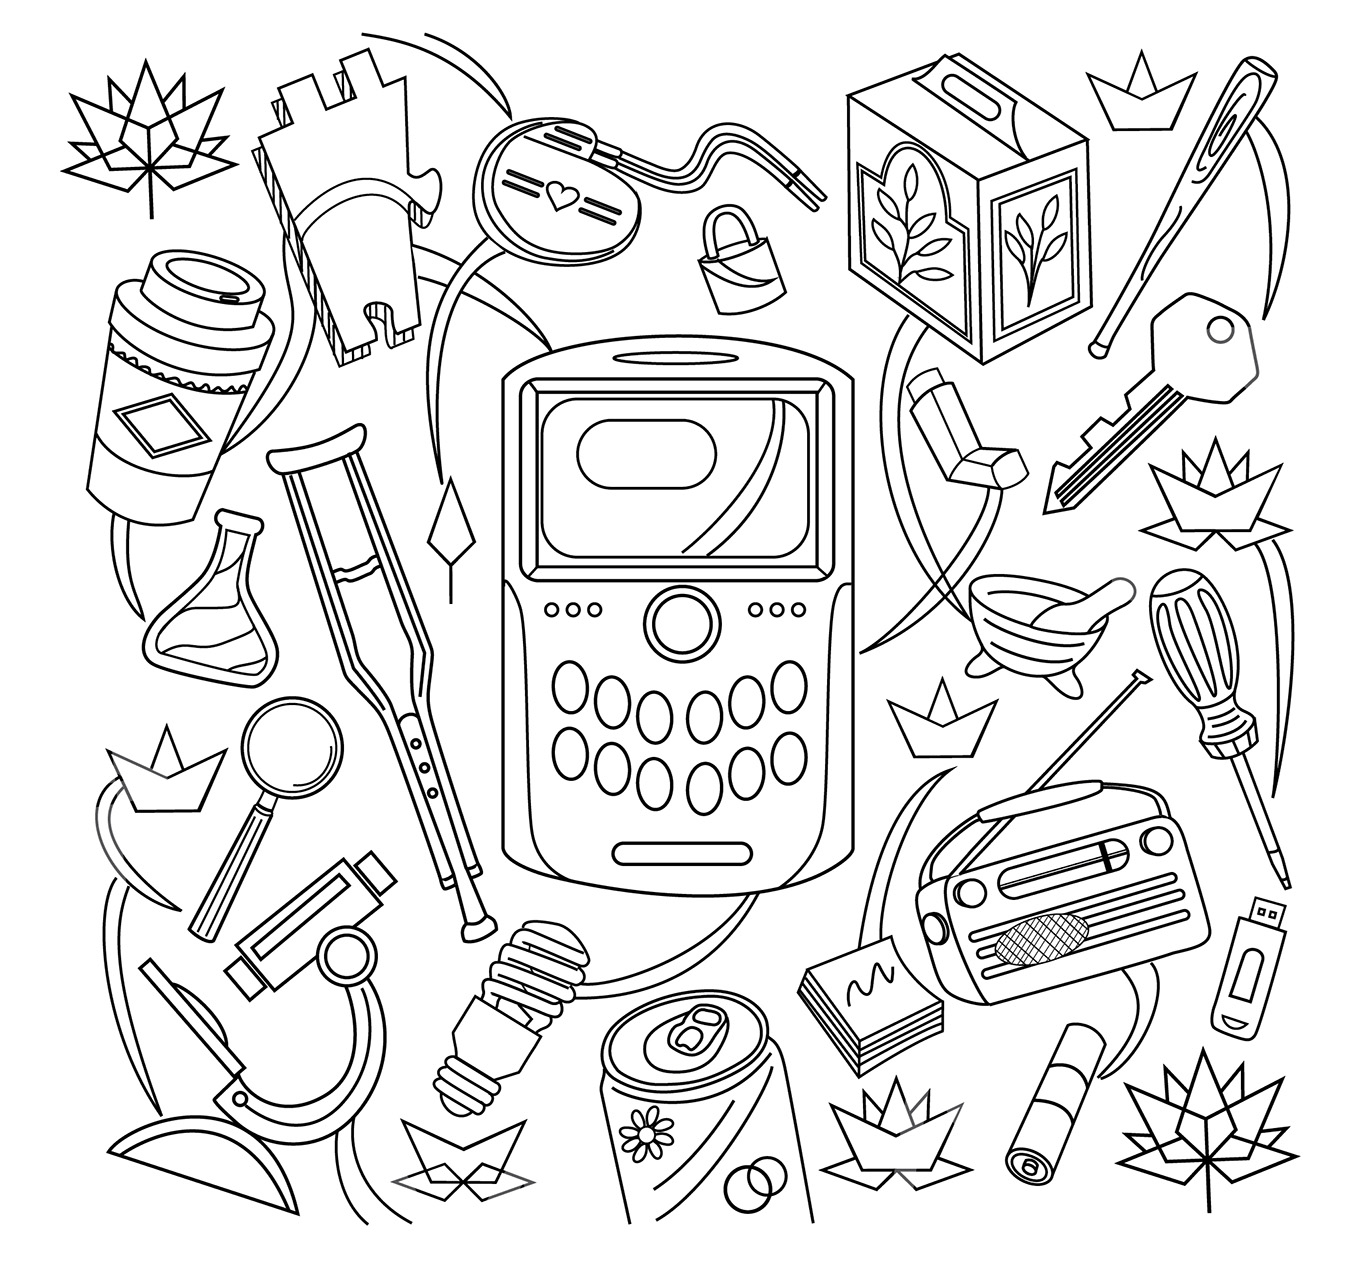 A book of canadian innovation canadian intellectual property office colouring page featuring sample items that could be subject matter for patent registration and a description biocorpaavc Images